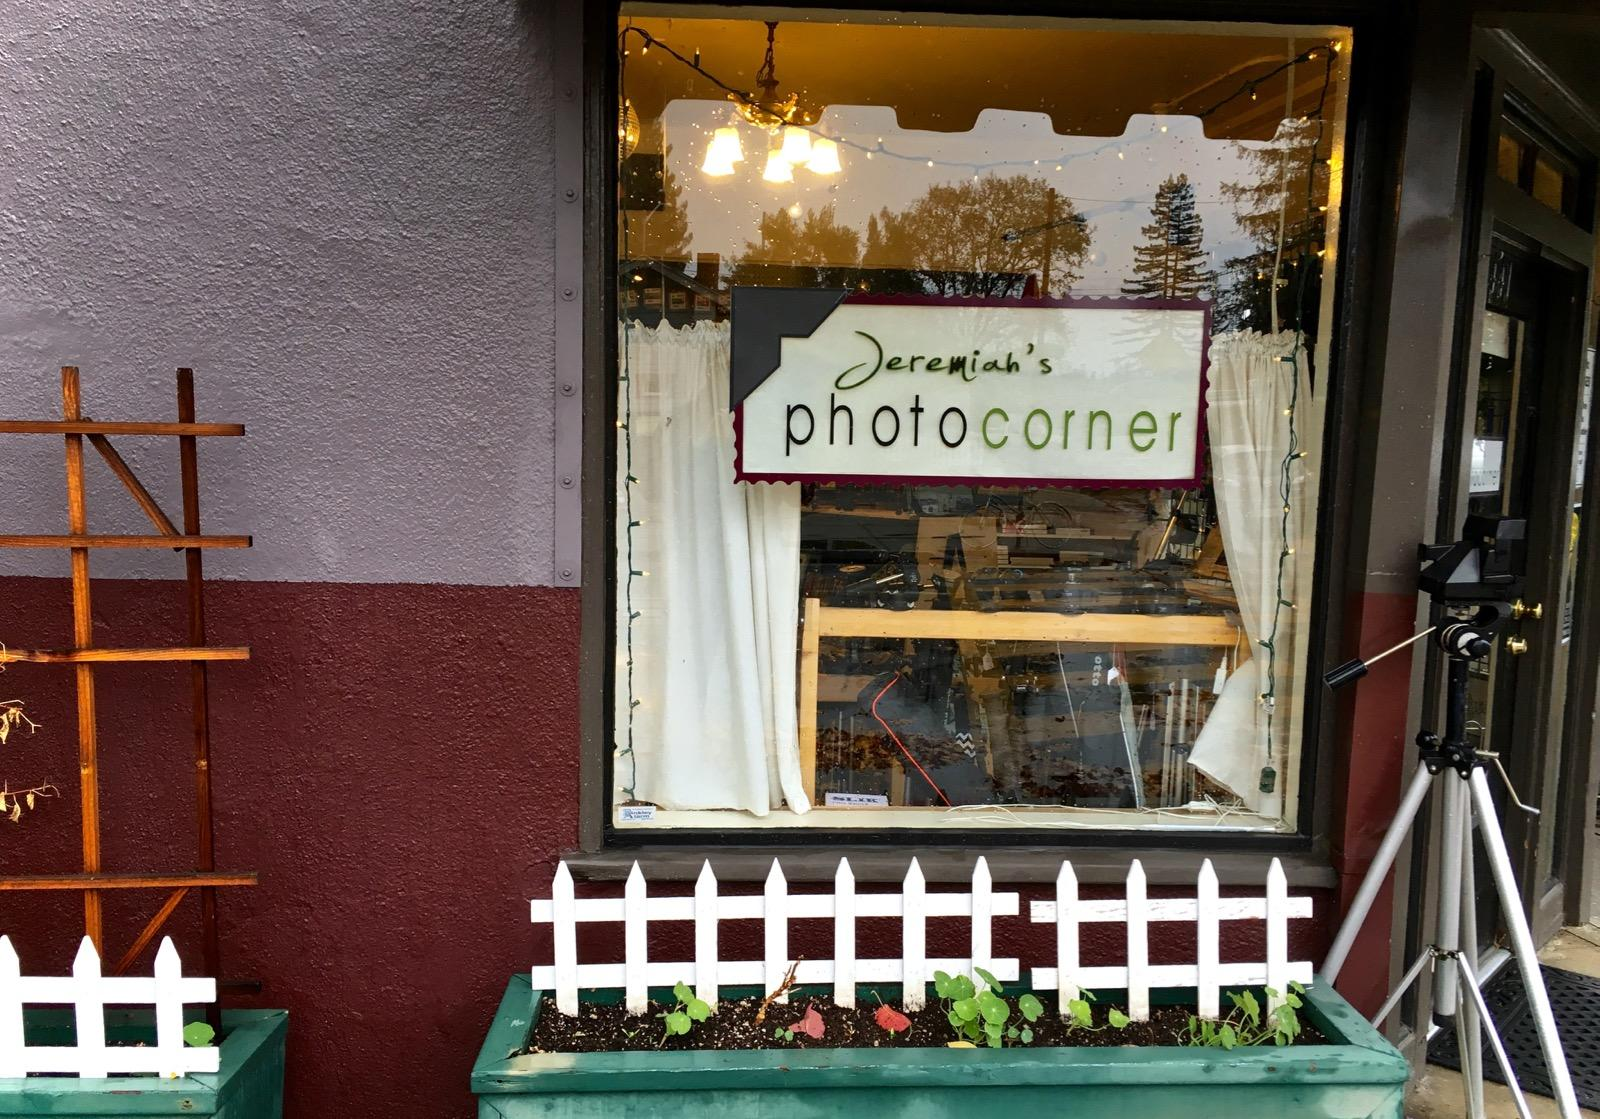 http://thedigitalstory.com/2015/12/08/the-photo-corner.jpg